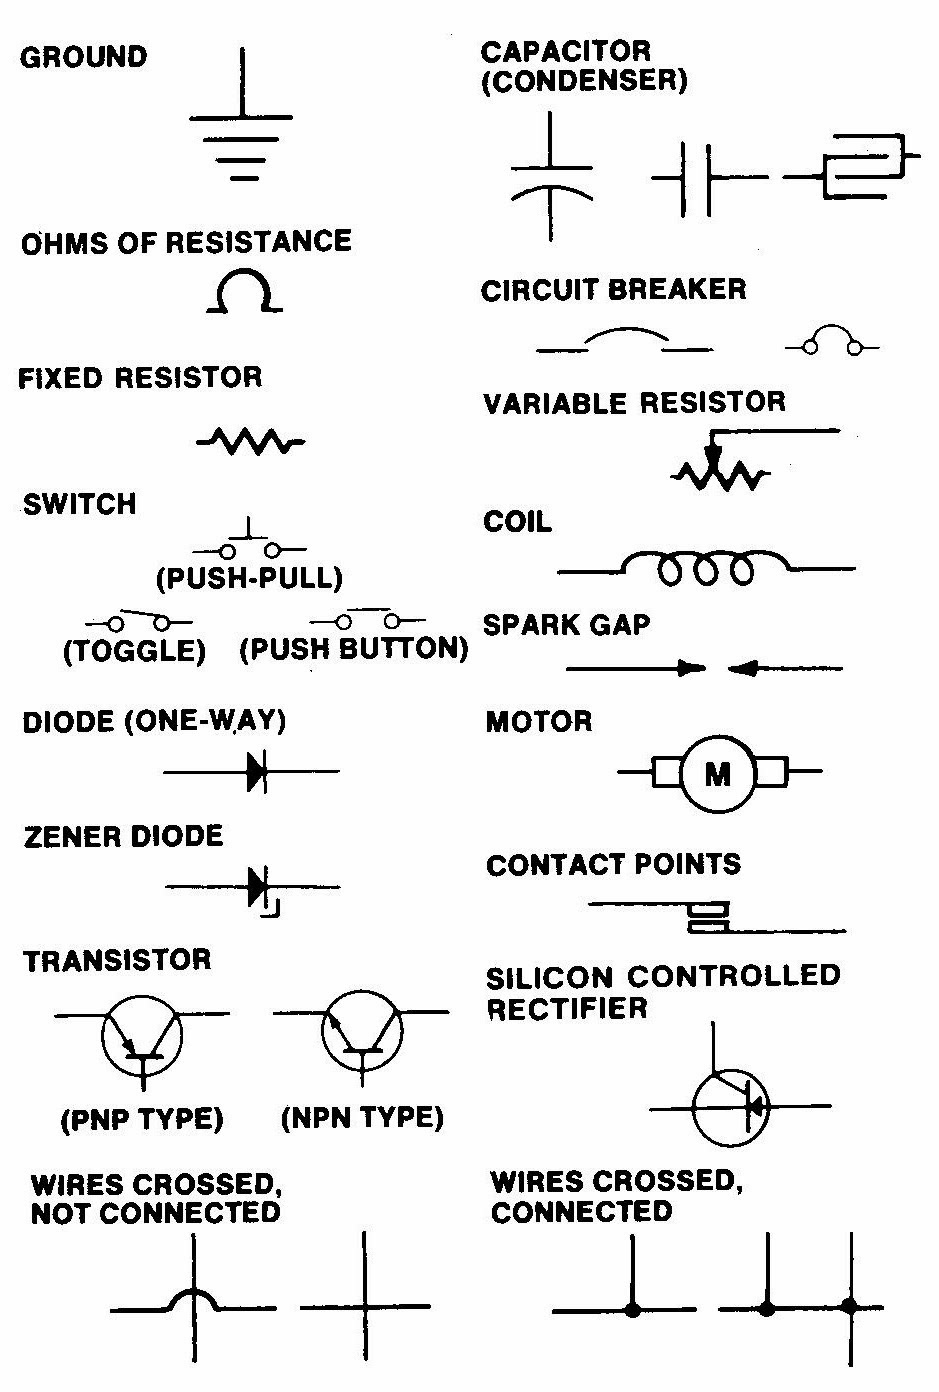 Old Coil Schematic Symbols Electrical Wiring Diagram Relay Circuit Symbol Fundamentals To Understanding Automobile And Contacts